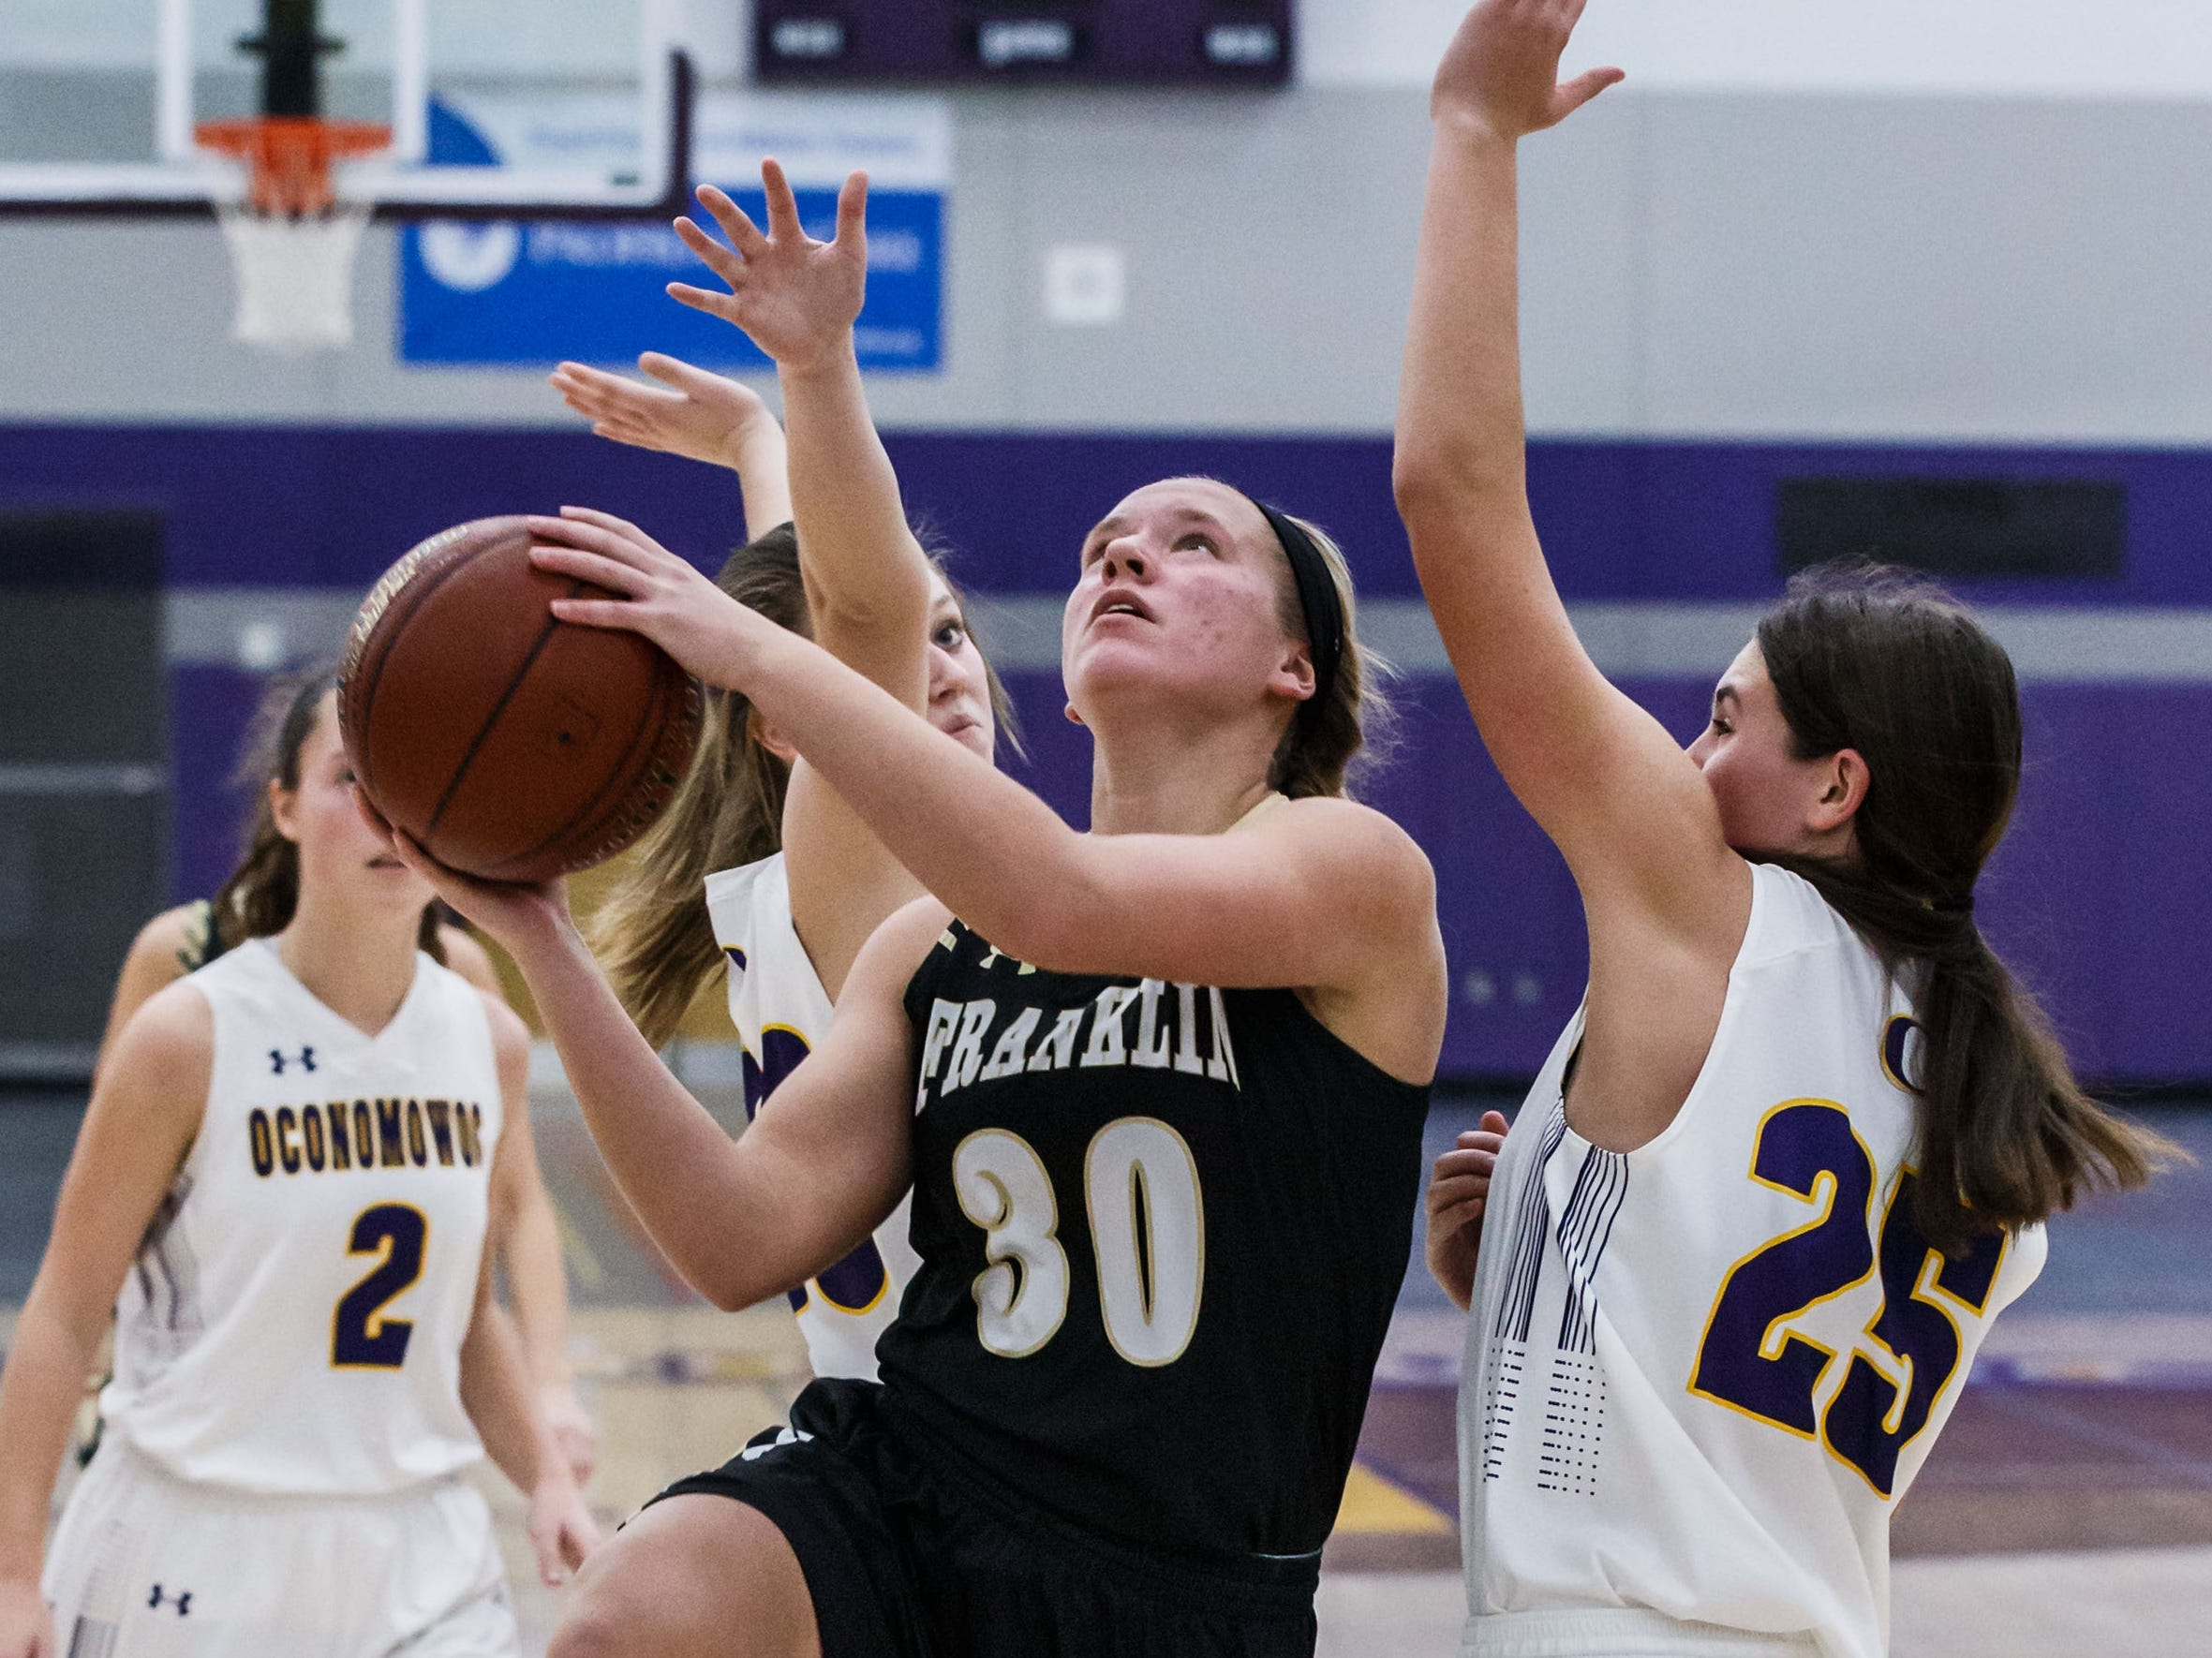 Franklin junior Abigail Matthews (30) drives past defenders during the game at Oconomowoc on Monday, Nov. 19, 2018.